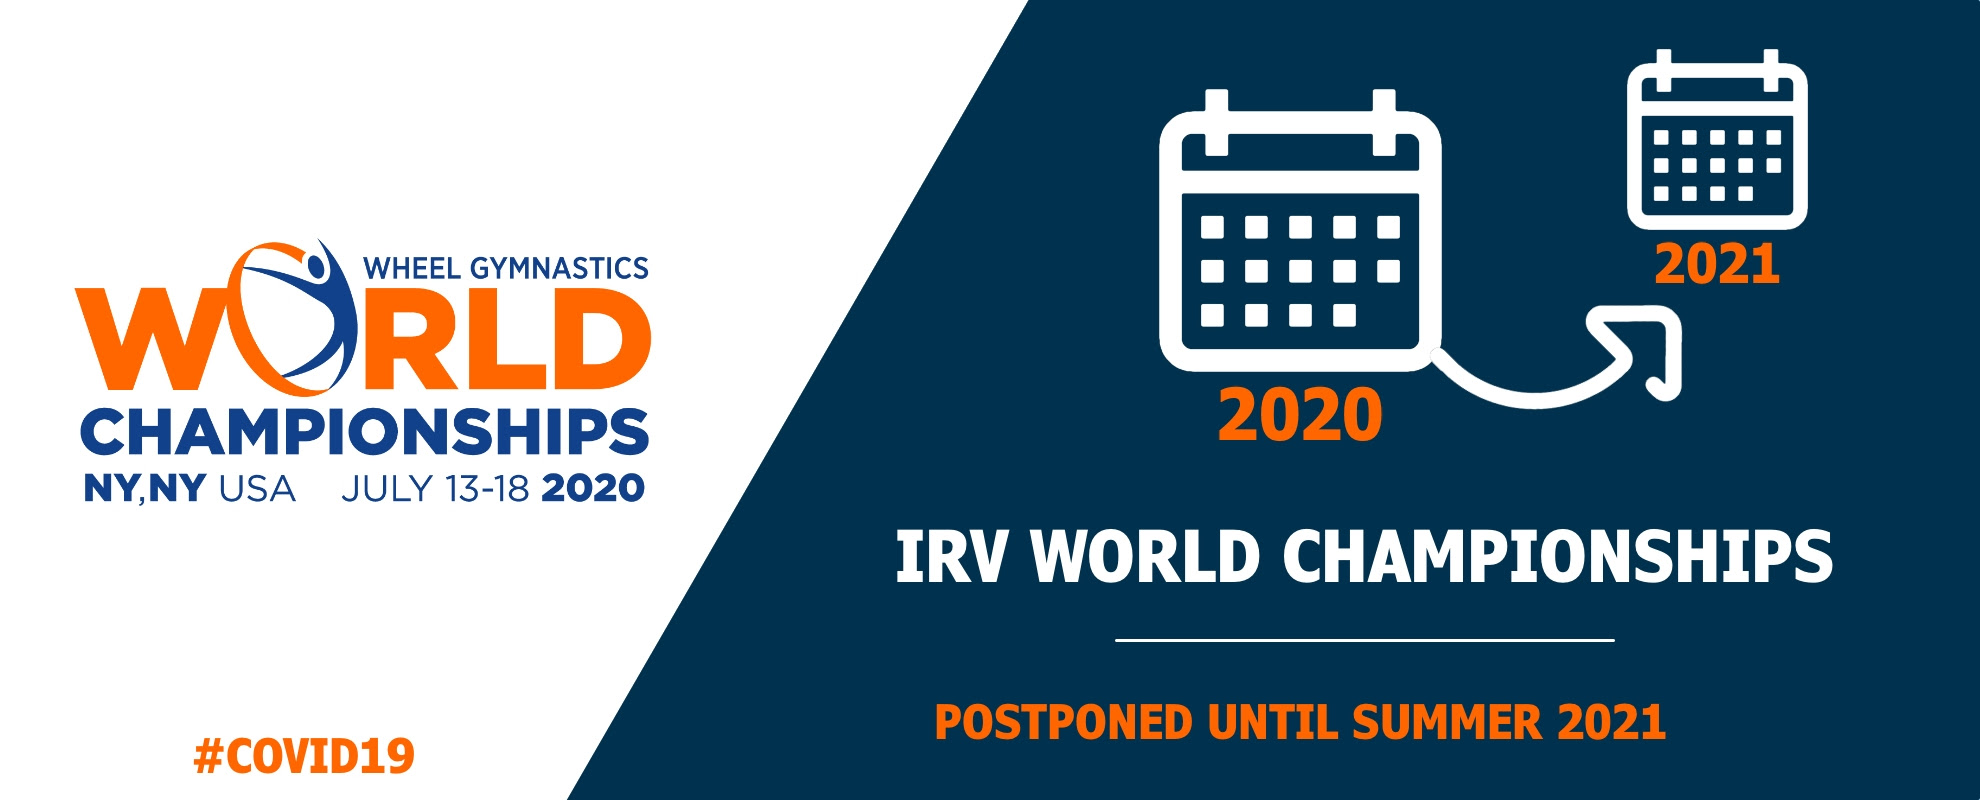 IRV Championship postponned until 2021